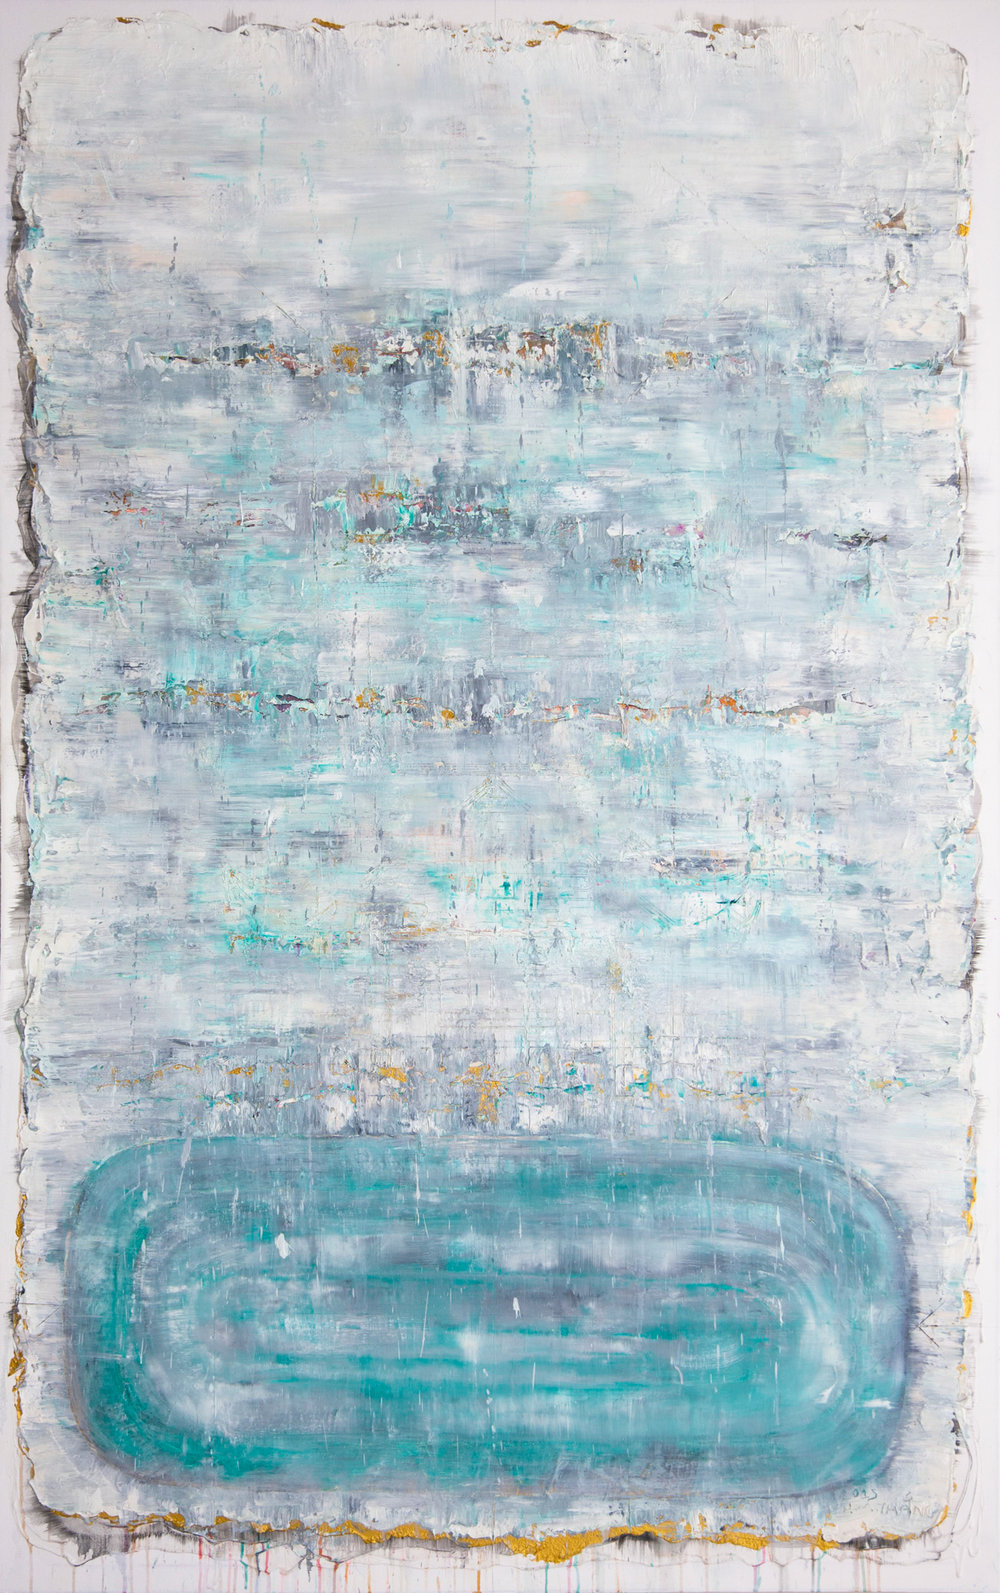 Lake At Changing Season, 2015, Oil, Acrylic and Charcoal on Canvas, 185 x 120 cm, HA Manh Thang